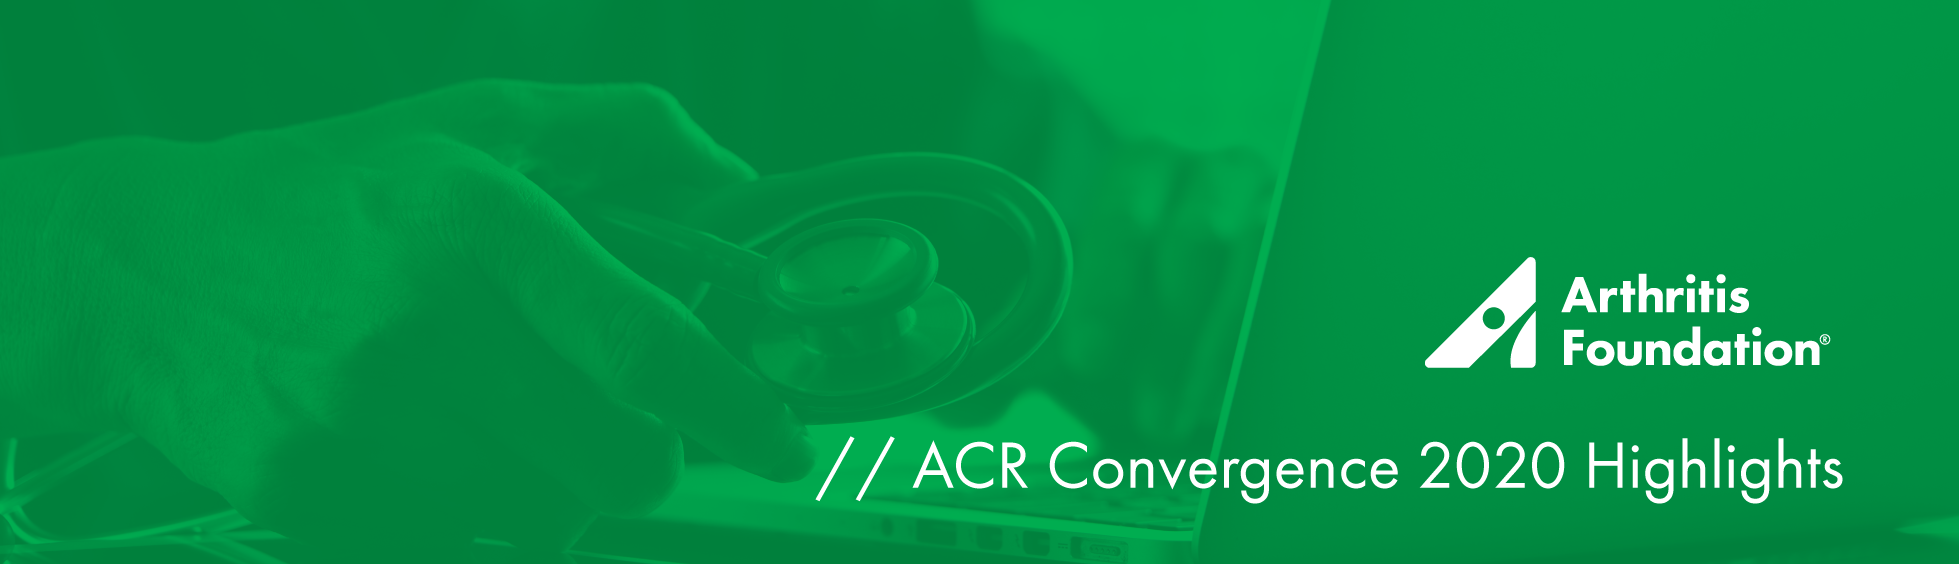 ACR 2020 Highlights: COVID-19 Vaccine Updates, Microbiome News, RA Guidelines, Mental Health in JIA and Patient Education